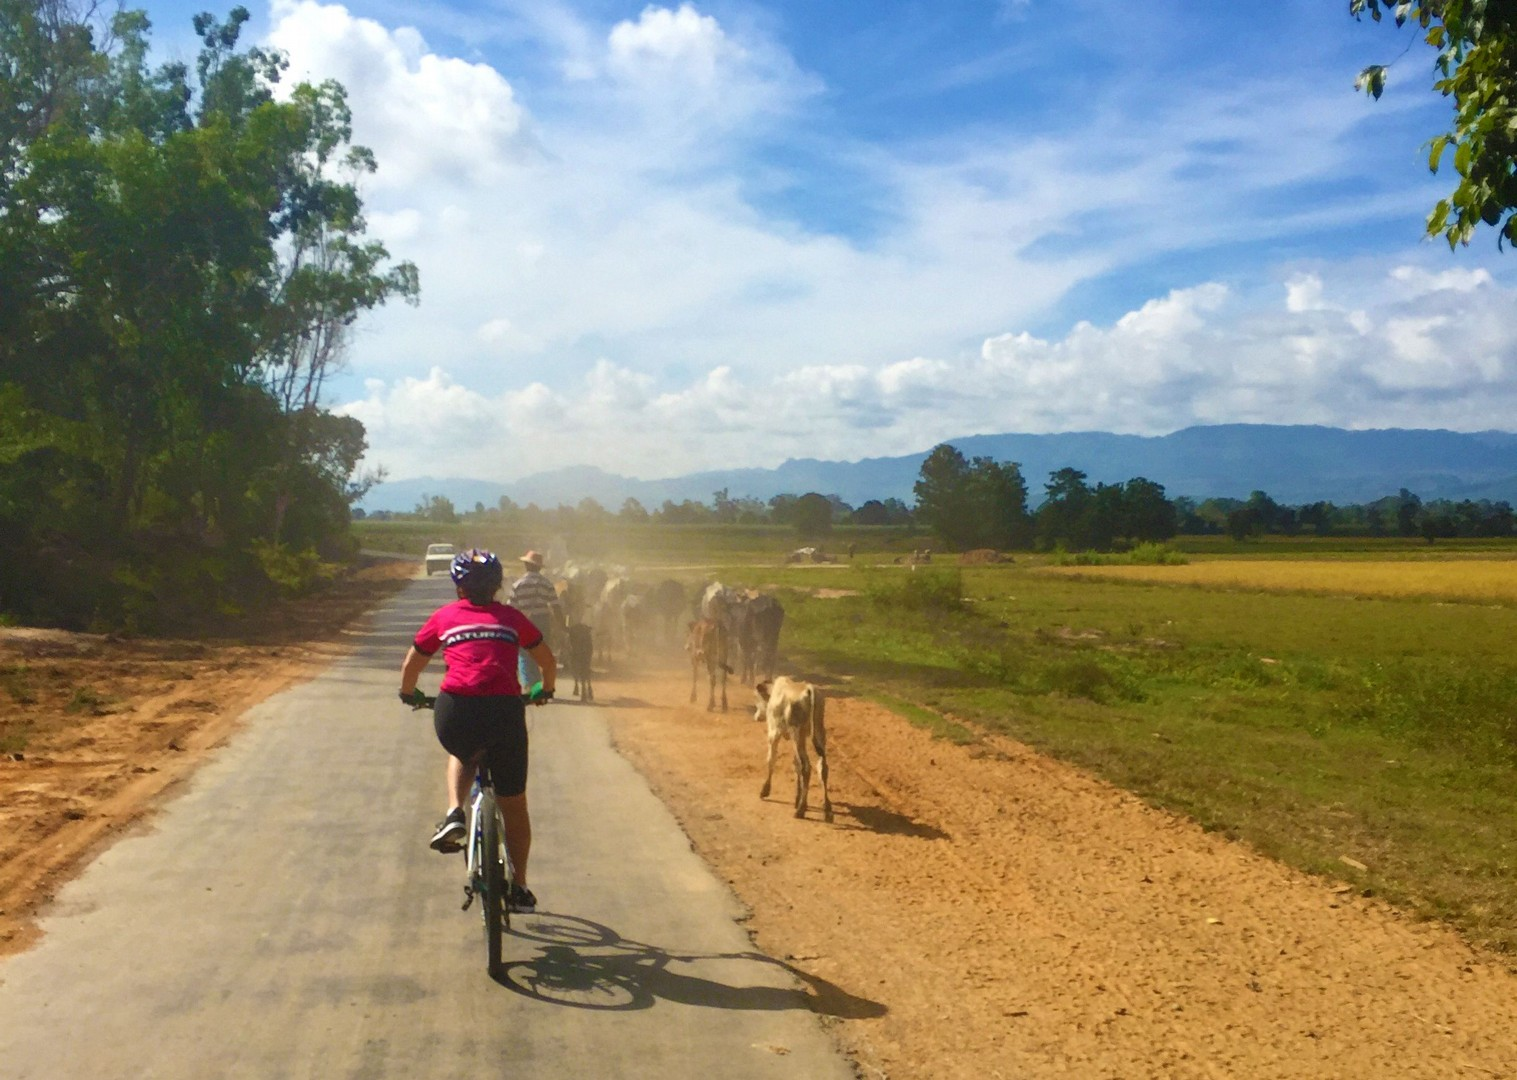 peaceful-group-cycling-countryside-burma.jpg - Burma - Bagan and Beyond - Cycling Adventures